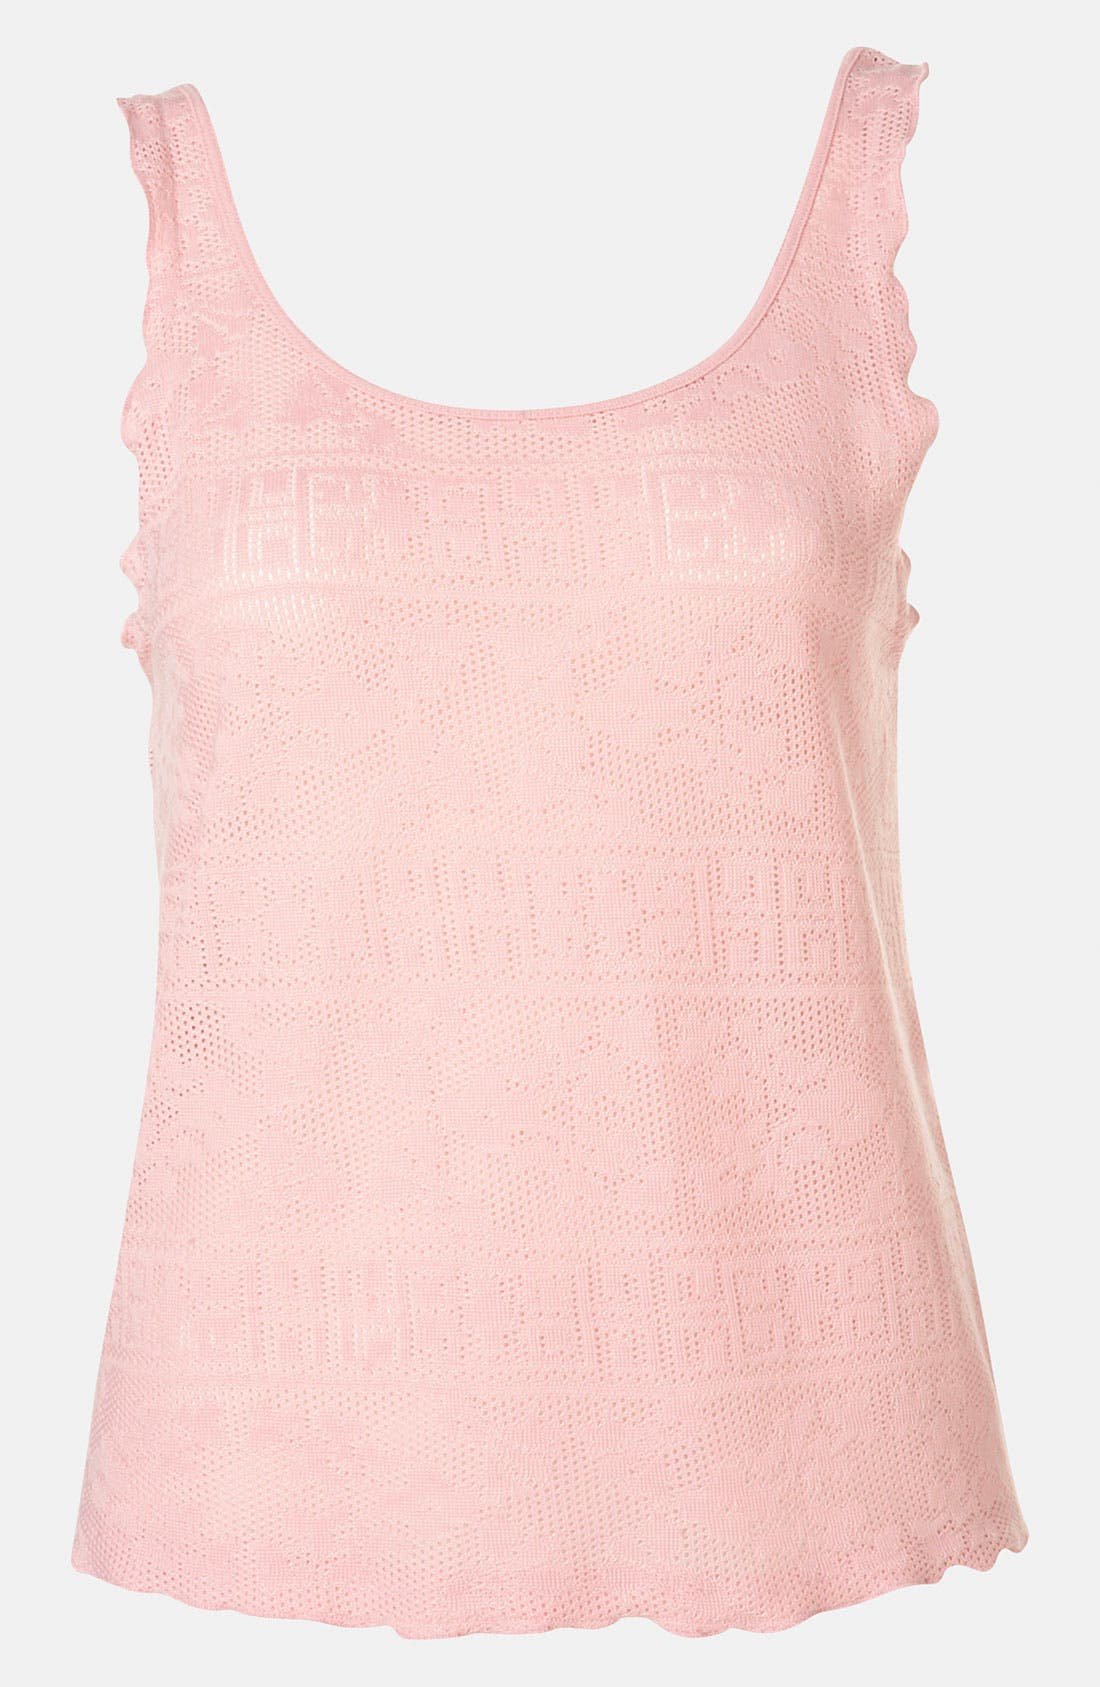 Alternate Image 1 Selected - Topshop Doily Lace Tank